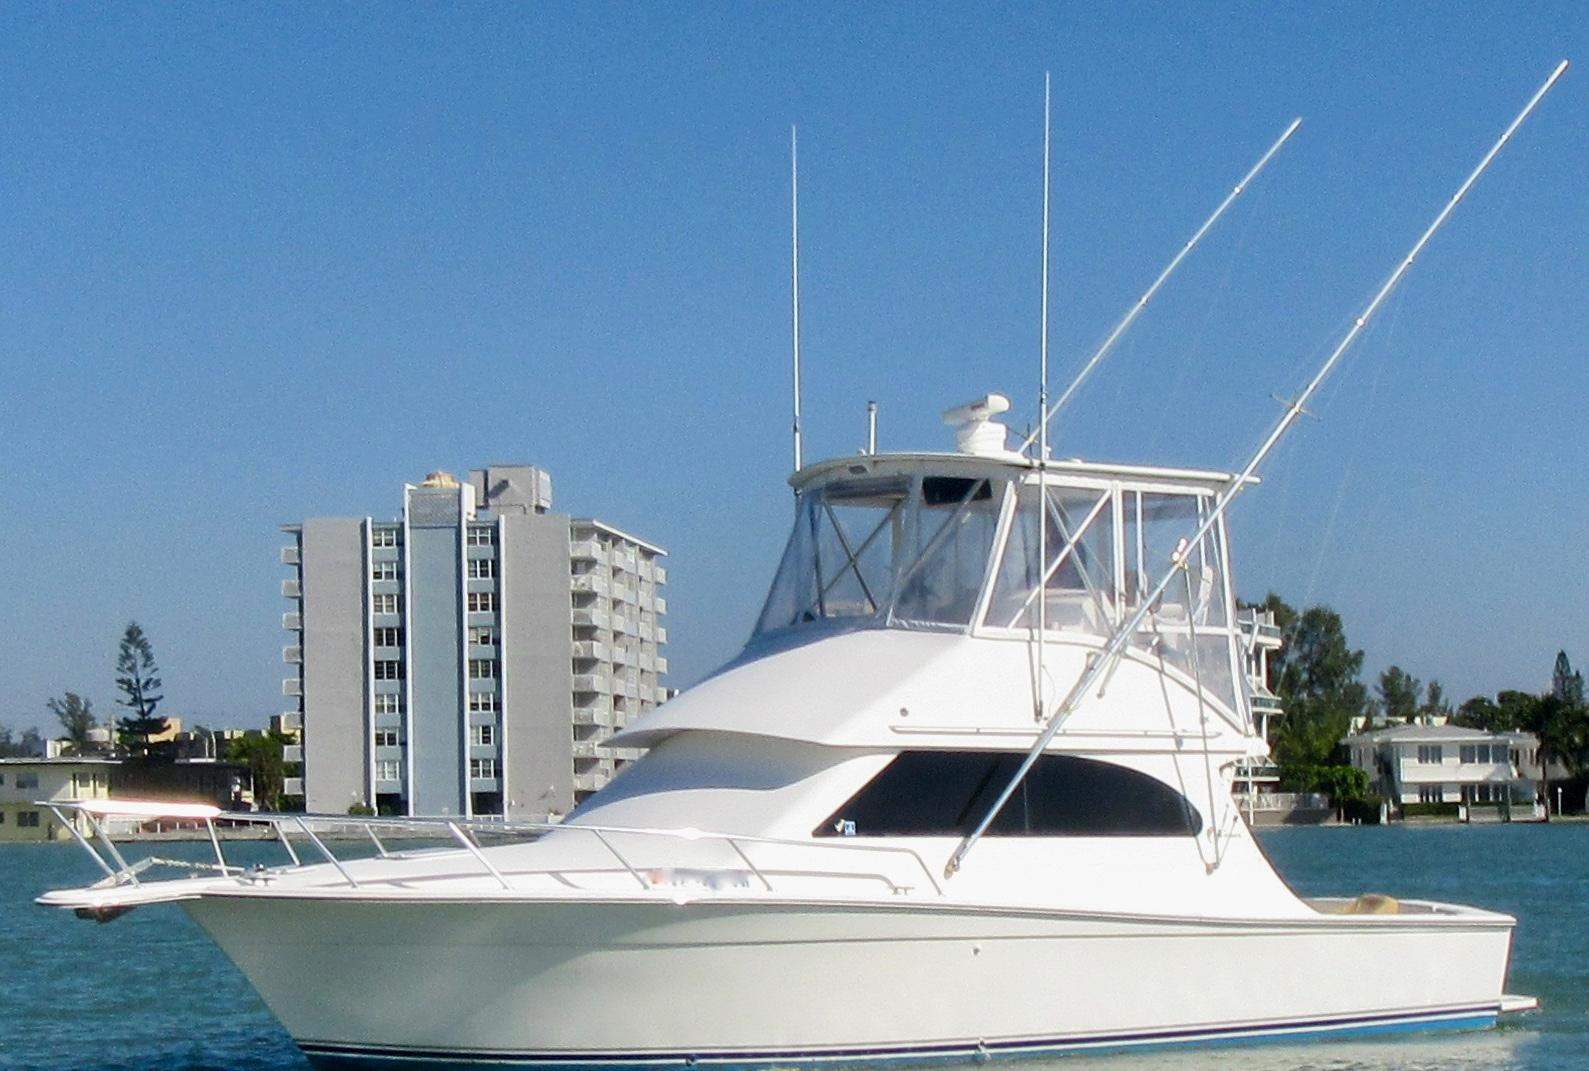 37' Egg Harbor 2002 Convertible